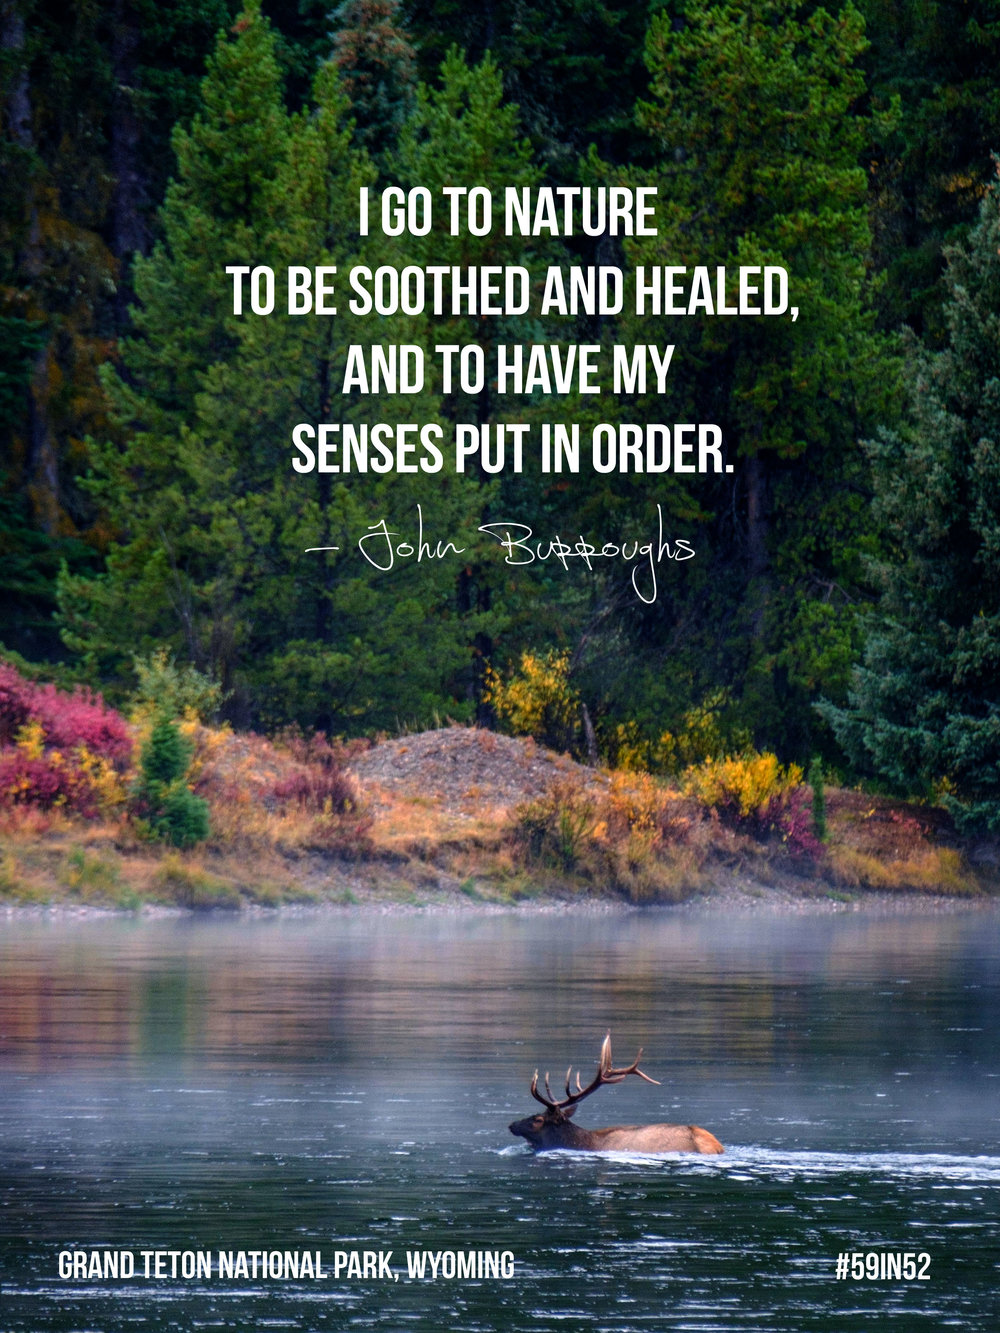 """I go to nature to be soothed and be healed, and to have my sense put back in order."" - John Burroughs"